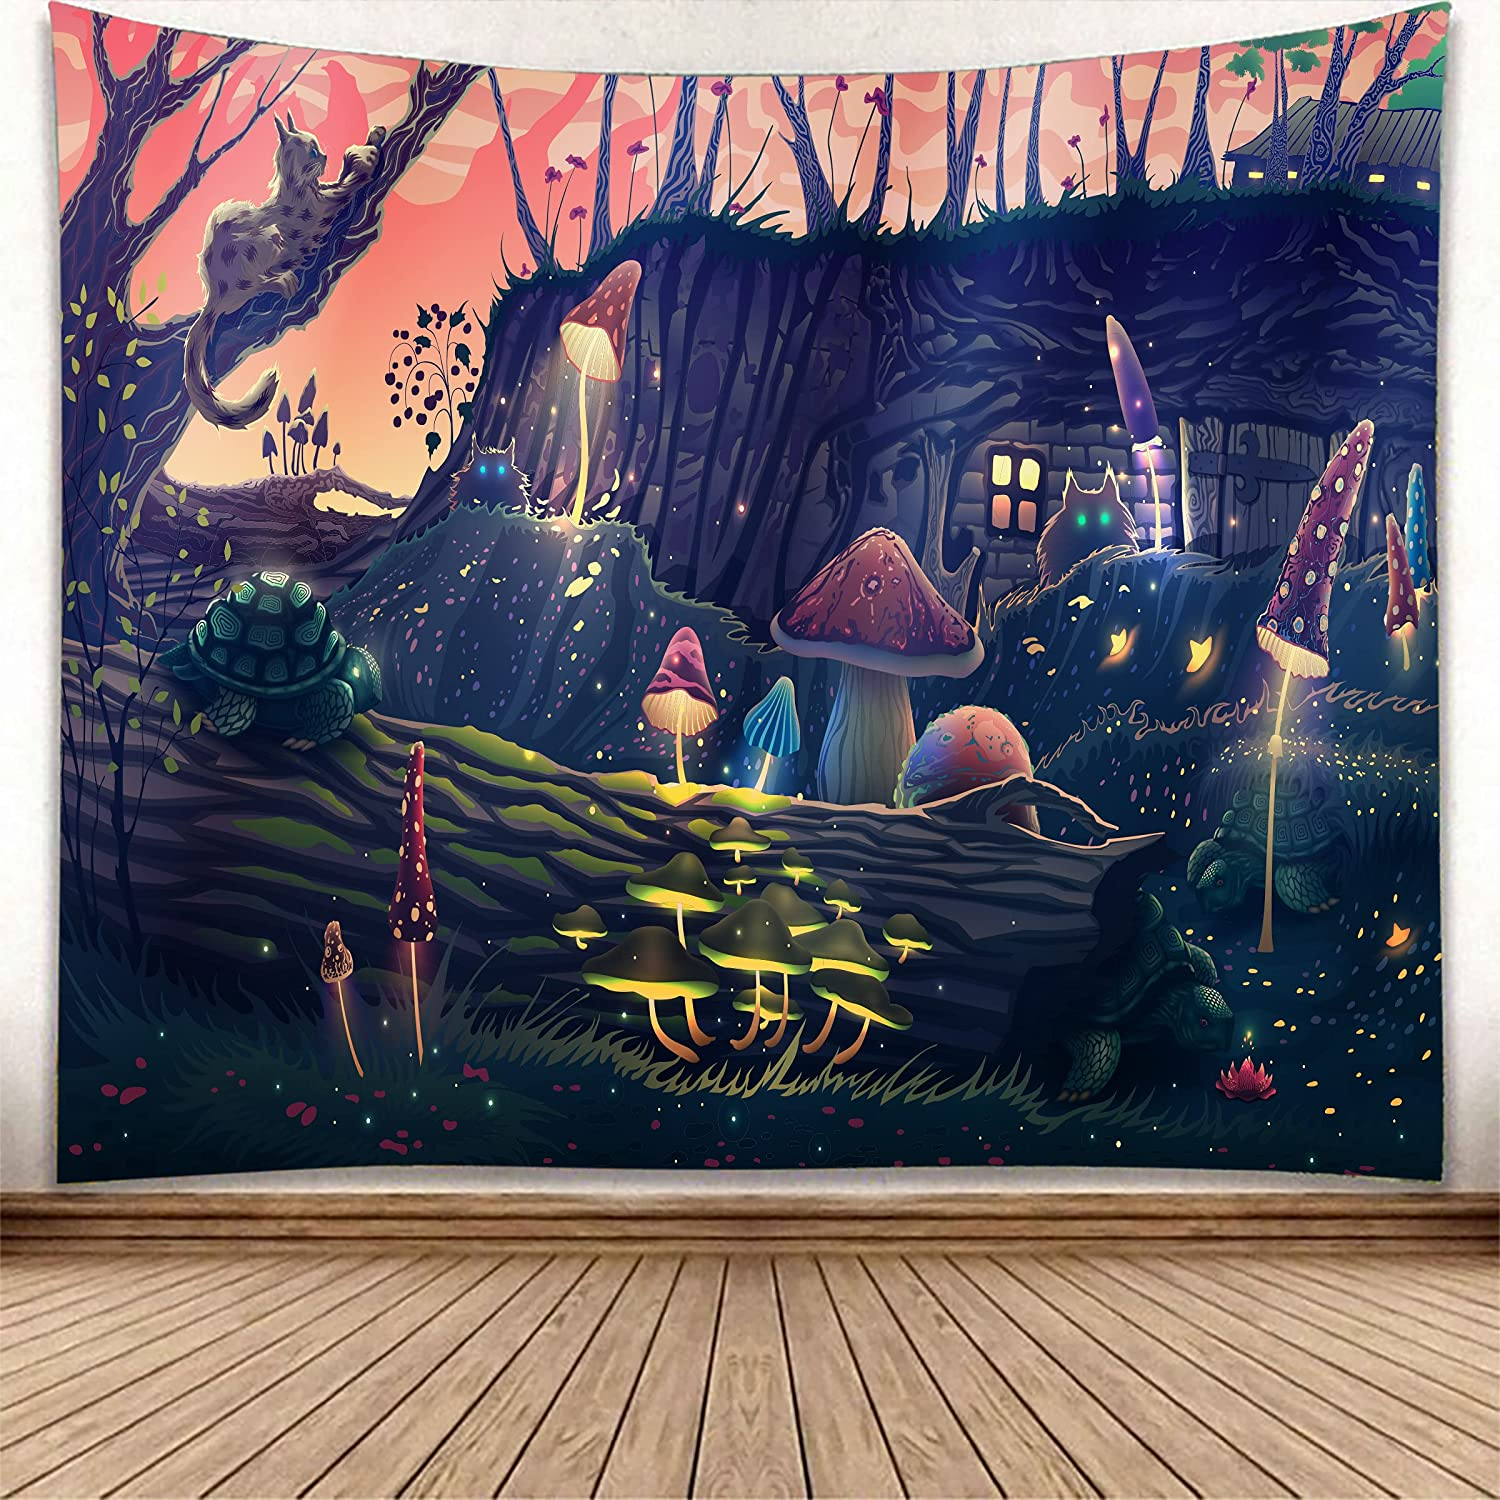 Treeswift Mushroom Forest Black Cat Turtle Tapestry Wall Hanging Tapestry for Bedroom Aesthetic Room Decor for Teens Adults